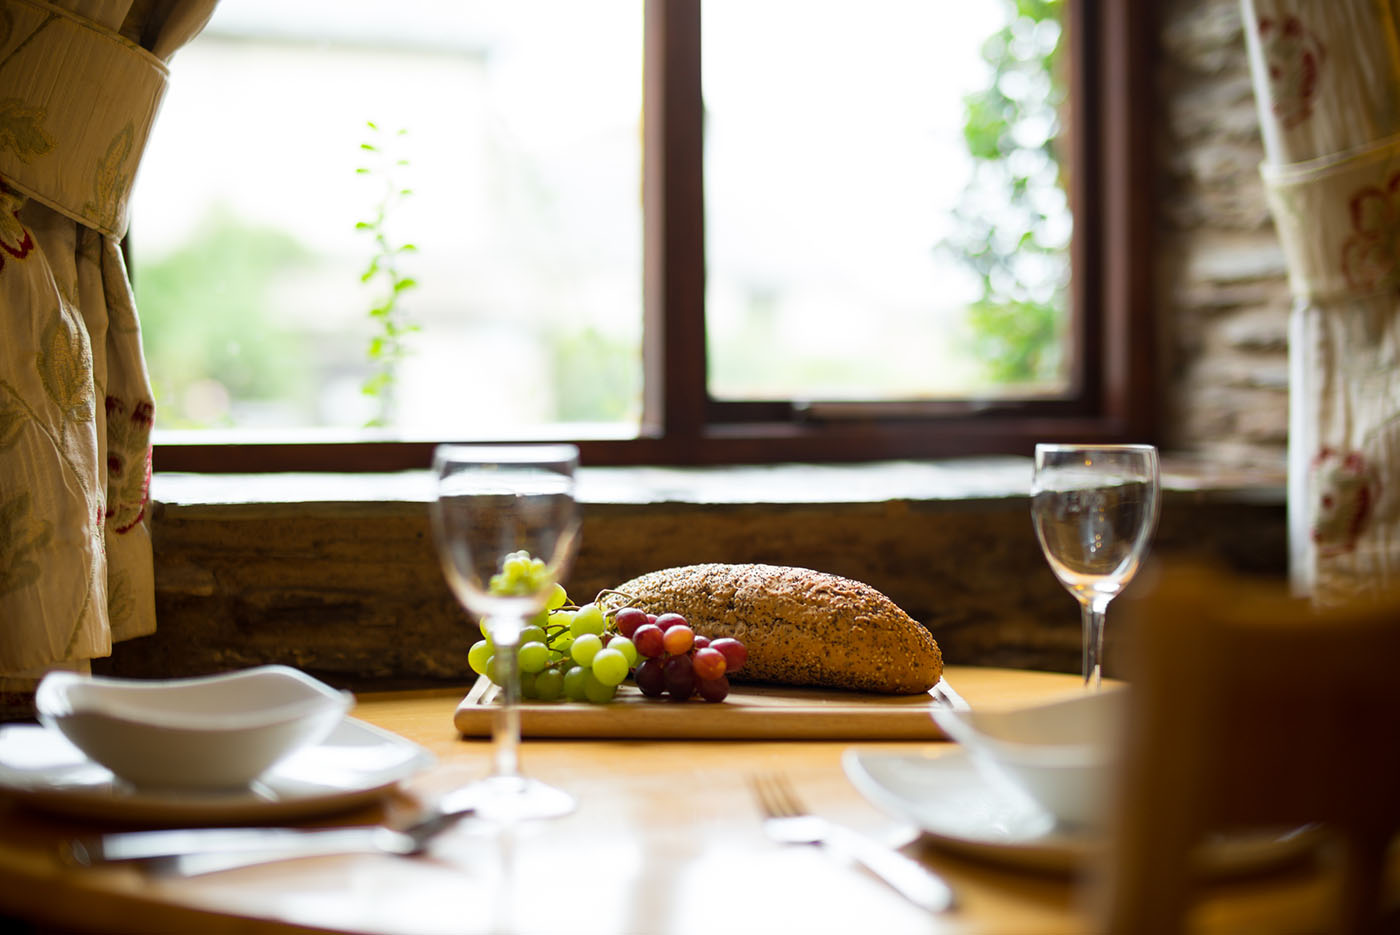 Hayloft dining table and view